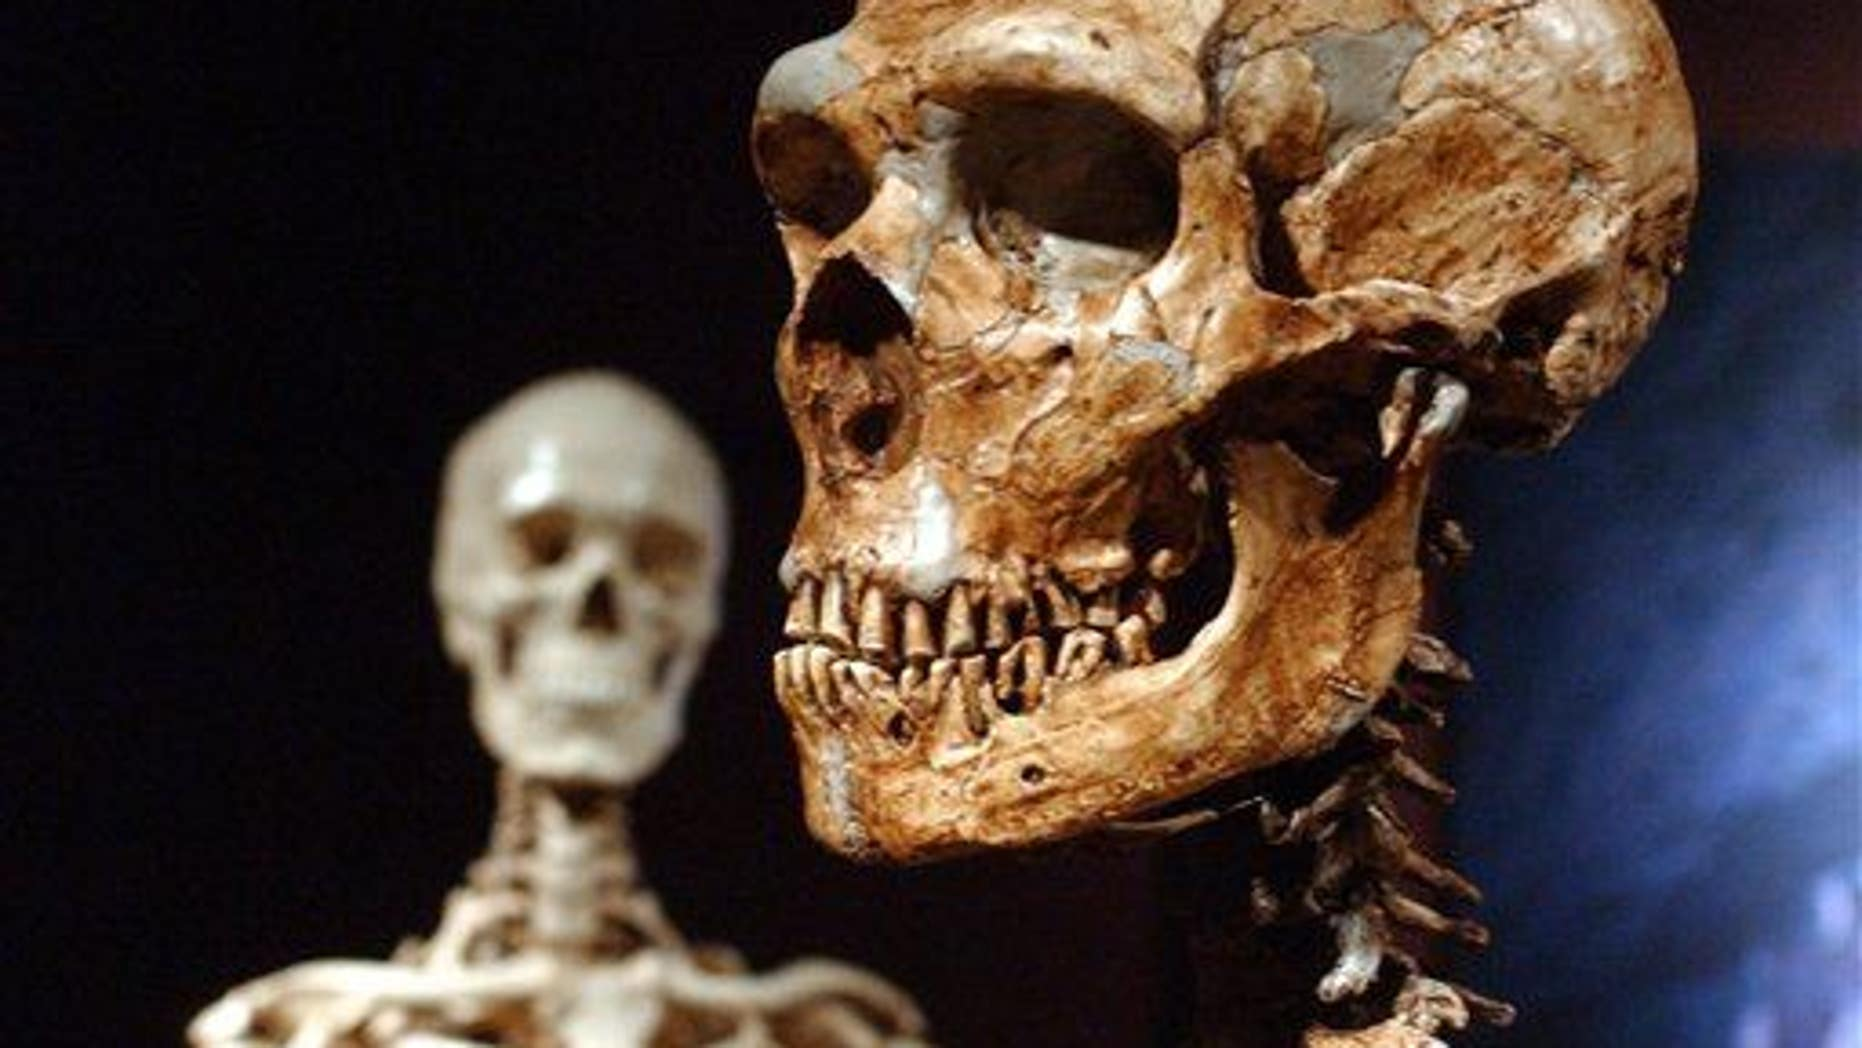 This Jan. 8, 2003 file photo shows a reconstructed Neanderthal skeleton, right, and a modern human version of a skeleton, left, on display at the Museum of Natural History.